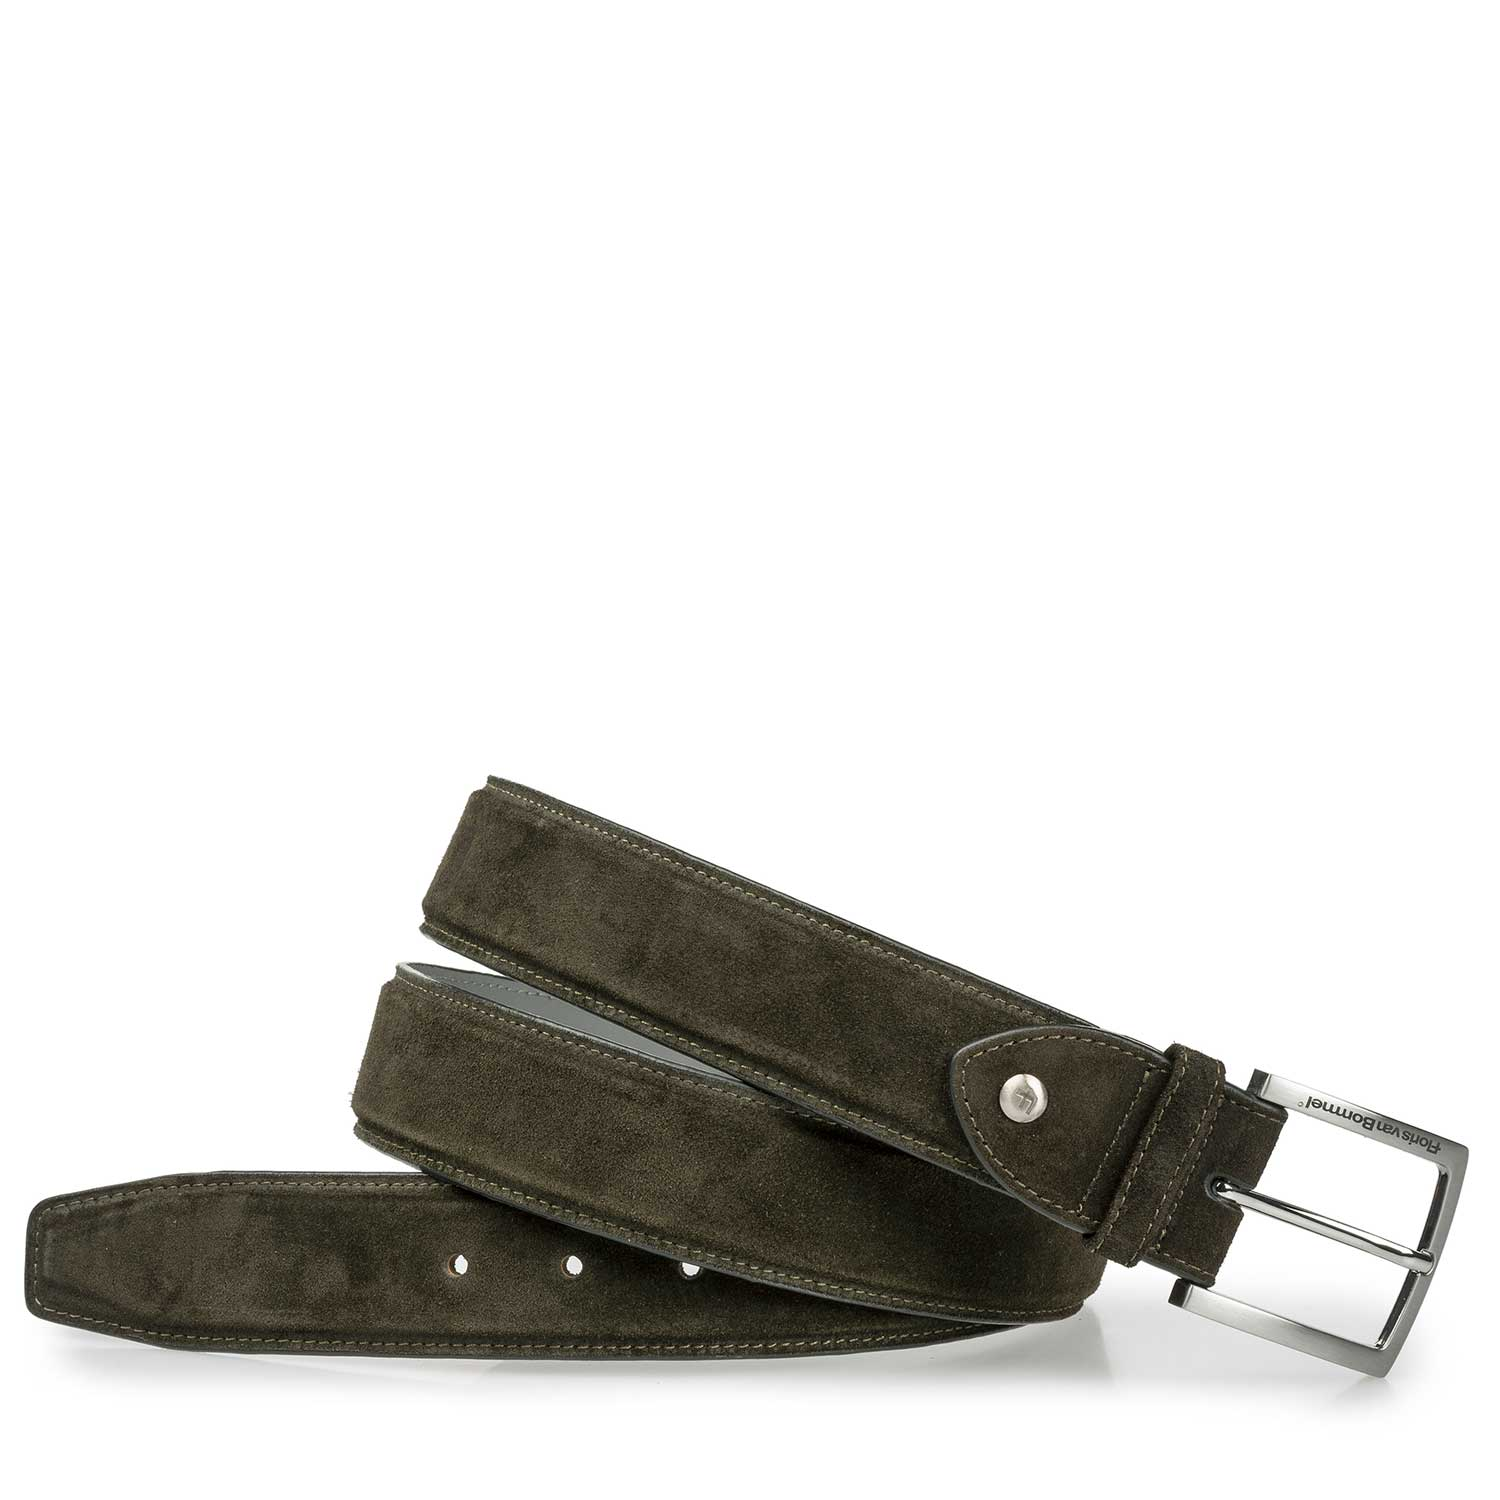 75189/27 - Green suede leather belt